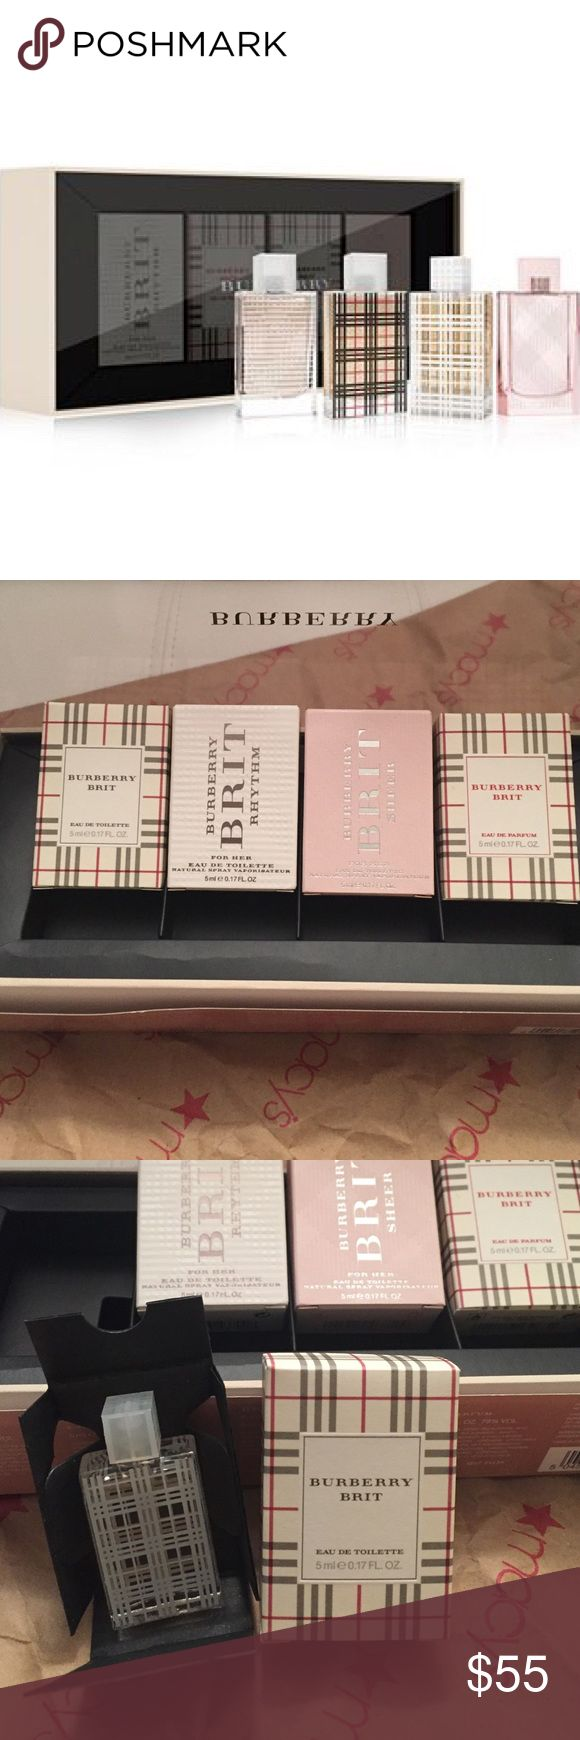 😍FOR ALL THE BURBERRY BRIT LOVERS😍NEW IN BOX Burberry Womens Coffret 4/ .17 bottles  Burberry Brit-Eau De Toilette Burberry Brit Rhythm Burberry Brit Sheer Burberry Brit-Eau De Parfum   Authentic New in Box Never Used Only opened for the photos Purchased from Macy's Burberry Other